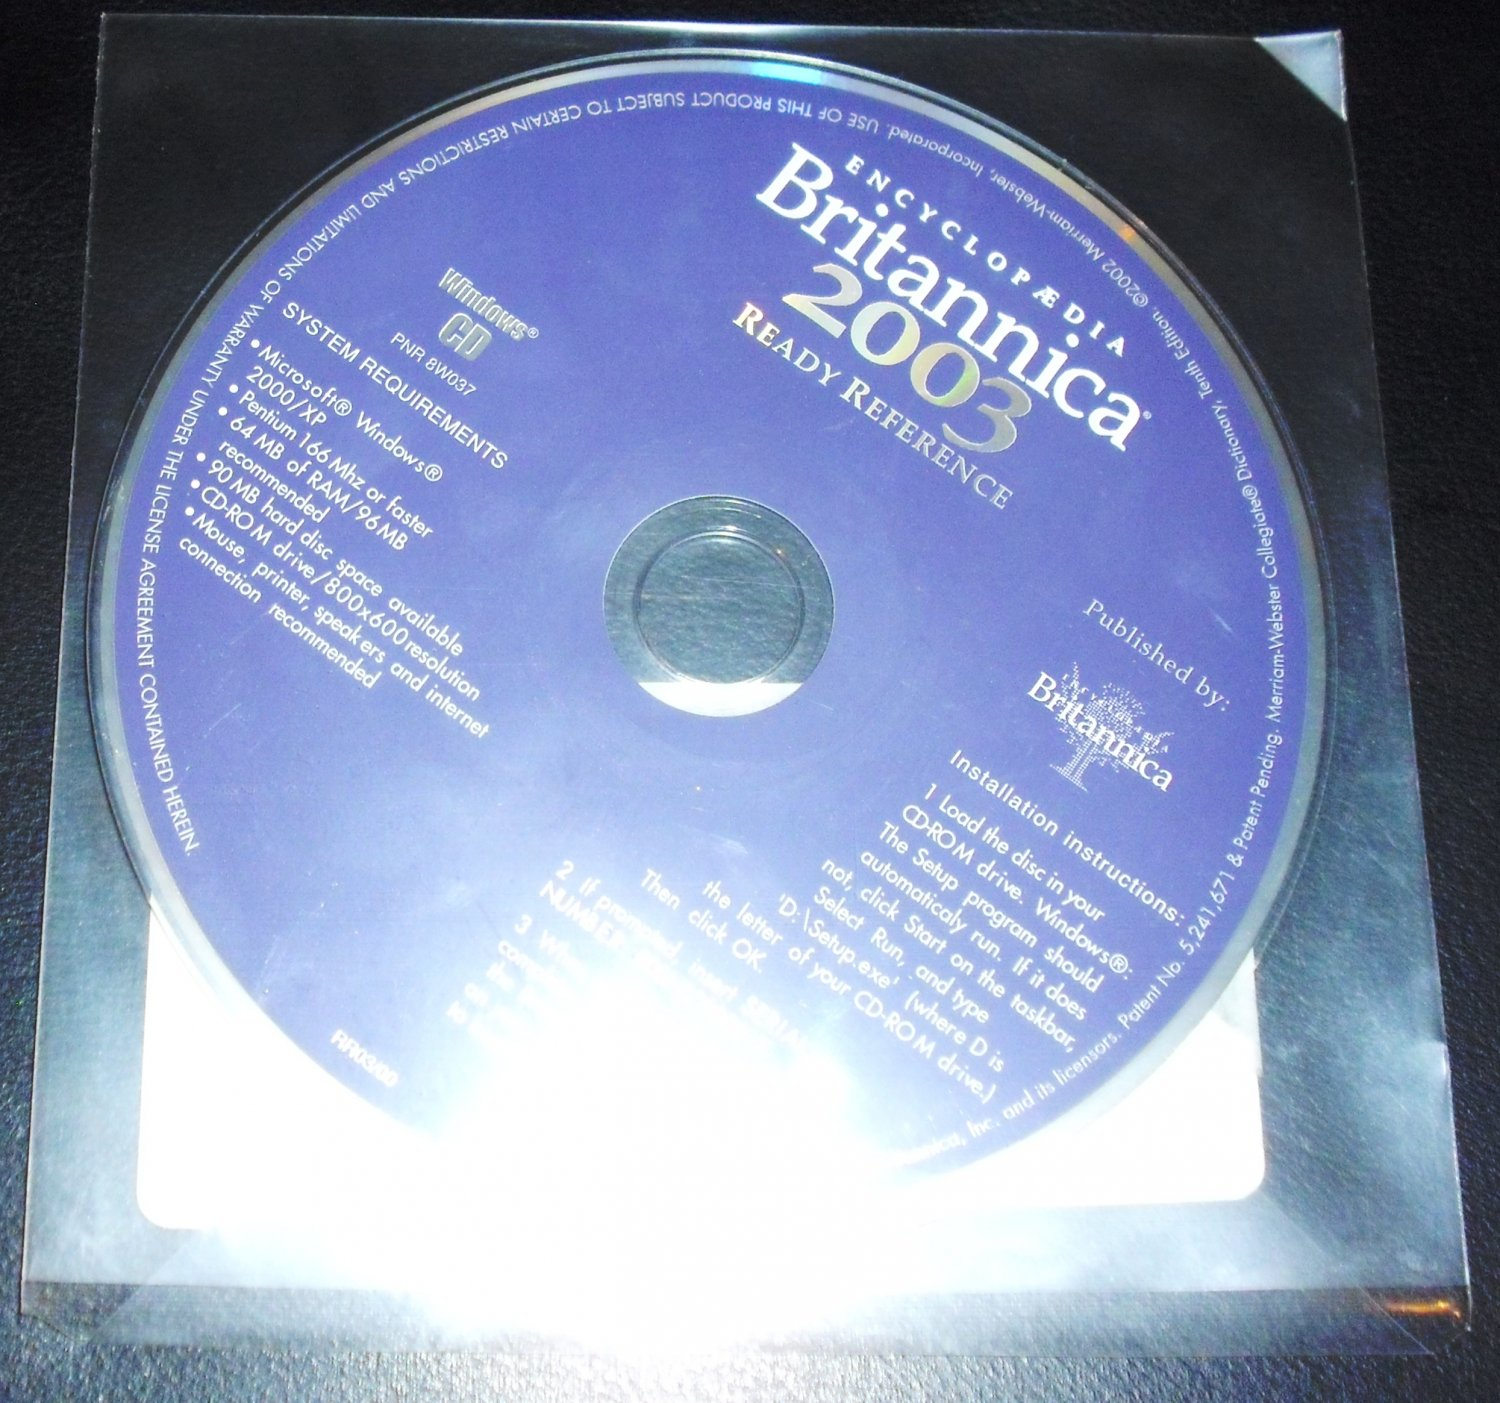 Encyclopedia Britannica 2003 Ready Reference CD-ROM by Encyclopaedia Britannica